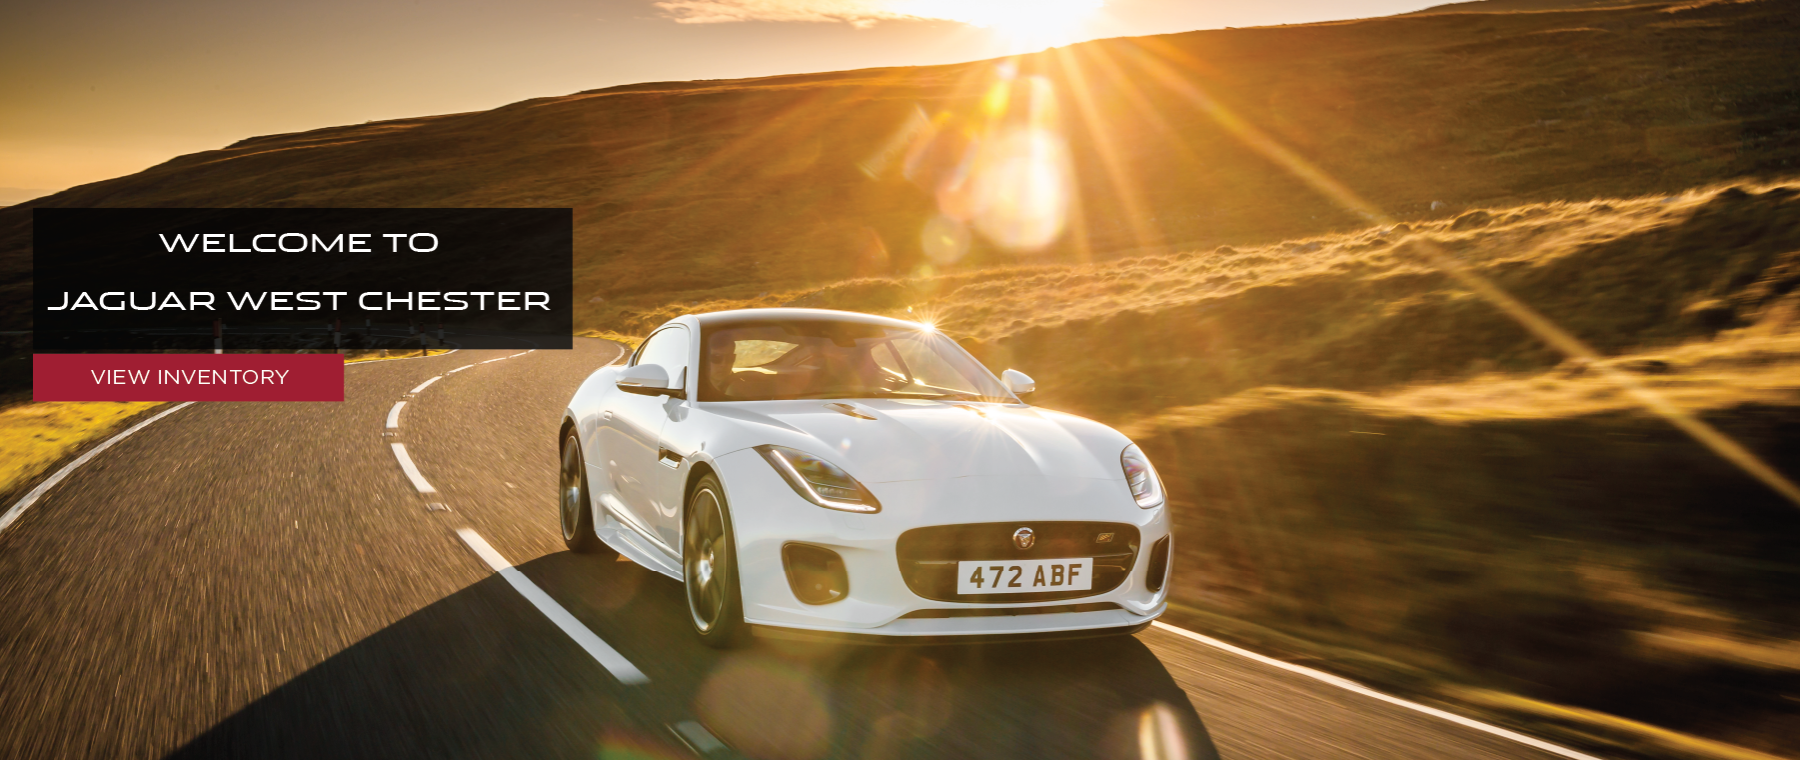 Alt Text: WELCOME TO JAGUAR WEST CHESTER_VIEW INVENTORY_IMAGE DISPLAYING WHITE 2020 JAGUAR F-TYPE DRIVING DOWN ROAD NEAR SUNSET